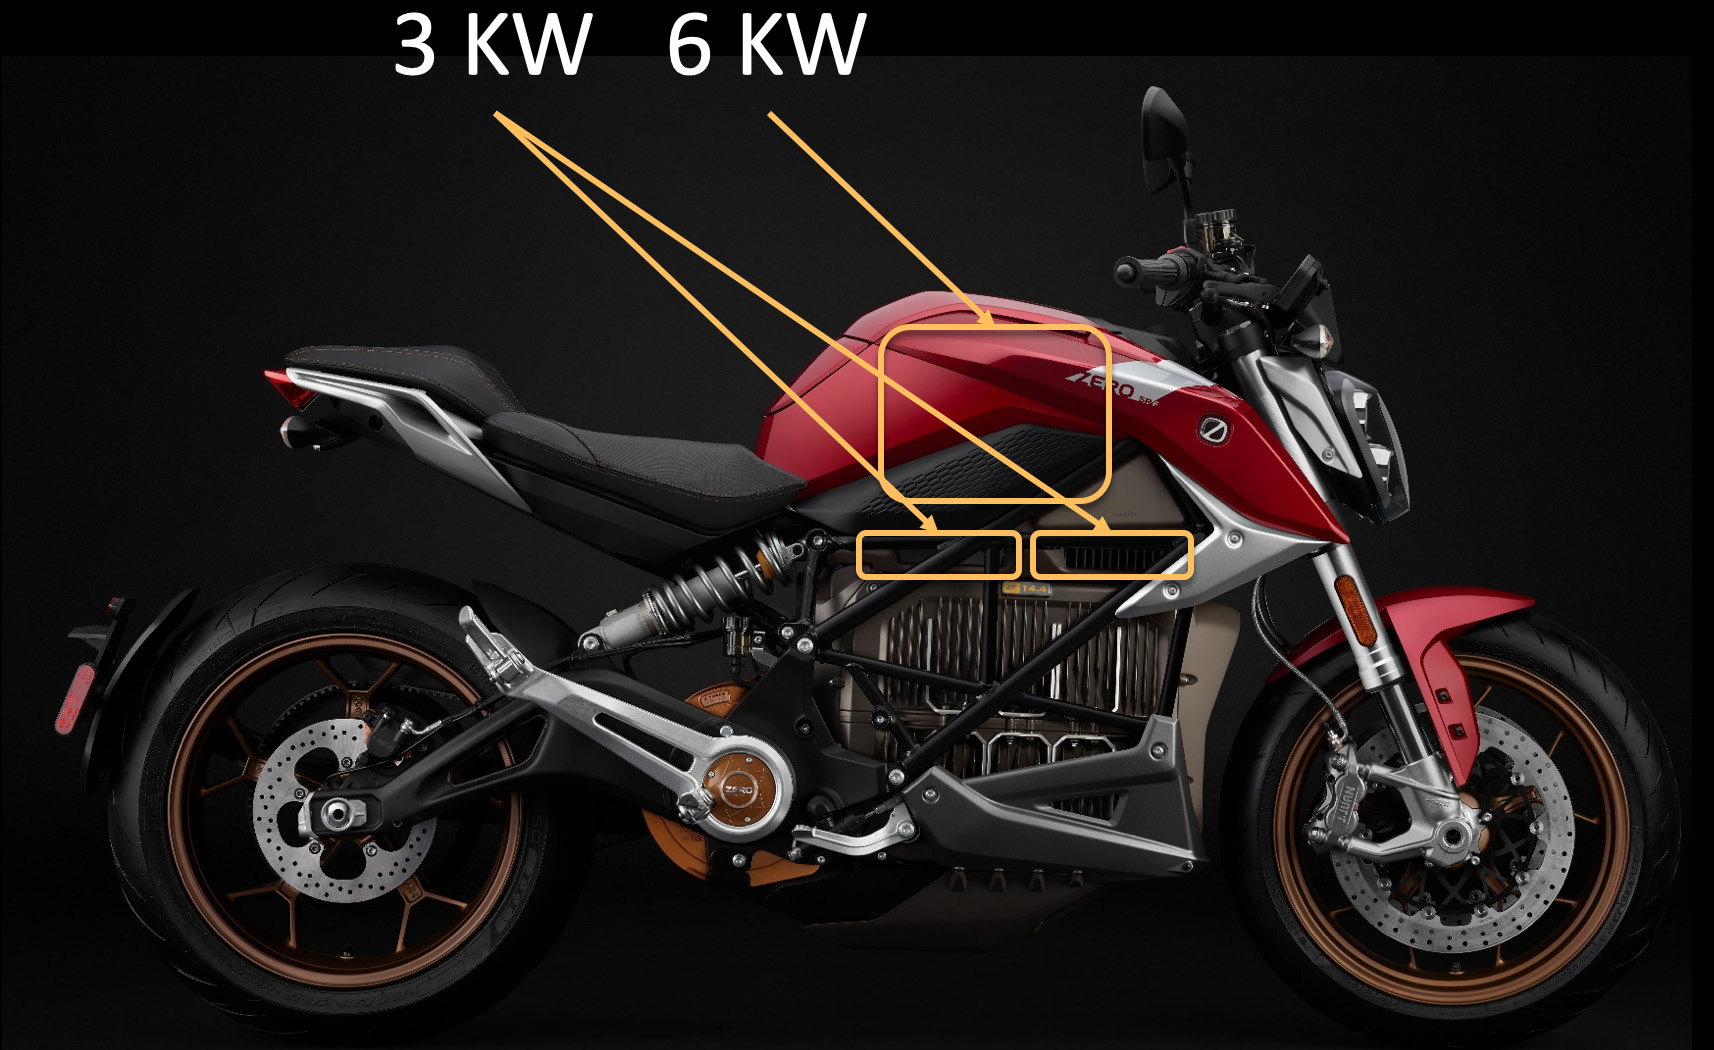 hight resolution of warranty 2 years motorcycle 5 years unlimited miles power pack